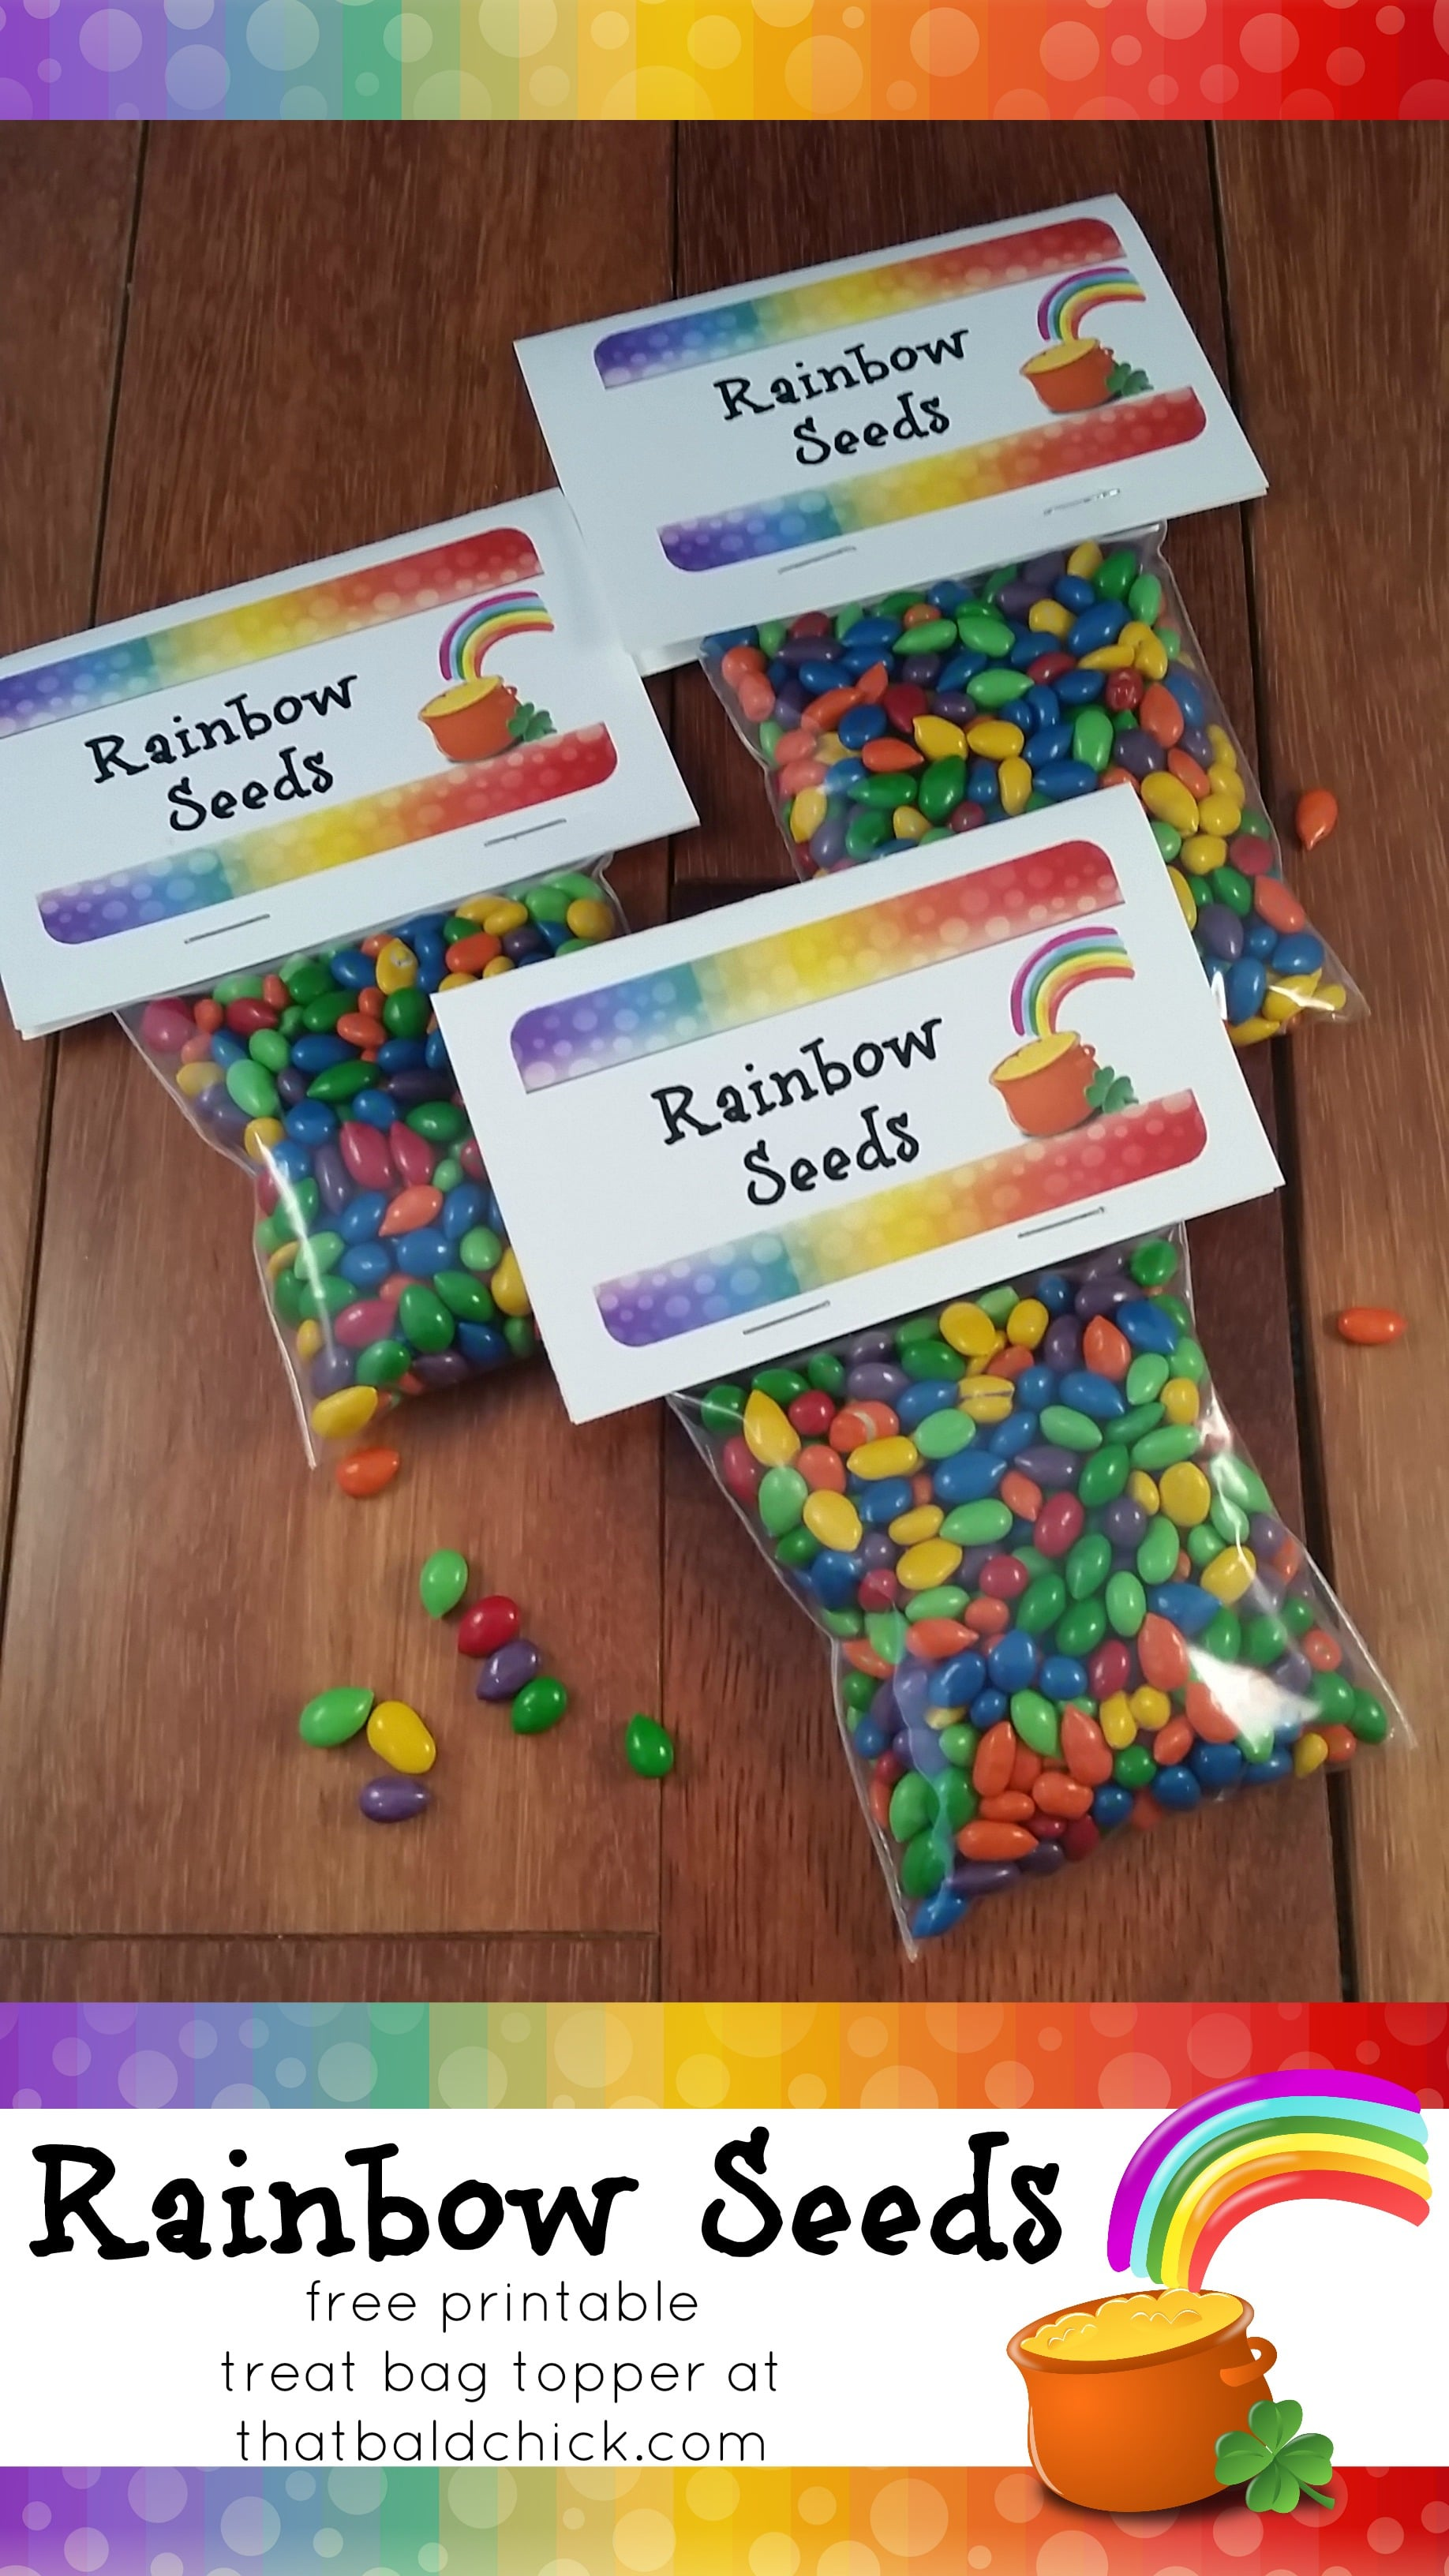 Free printable Rainbow Seeds treat bag topper at thatbaldchick.com